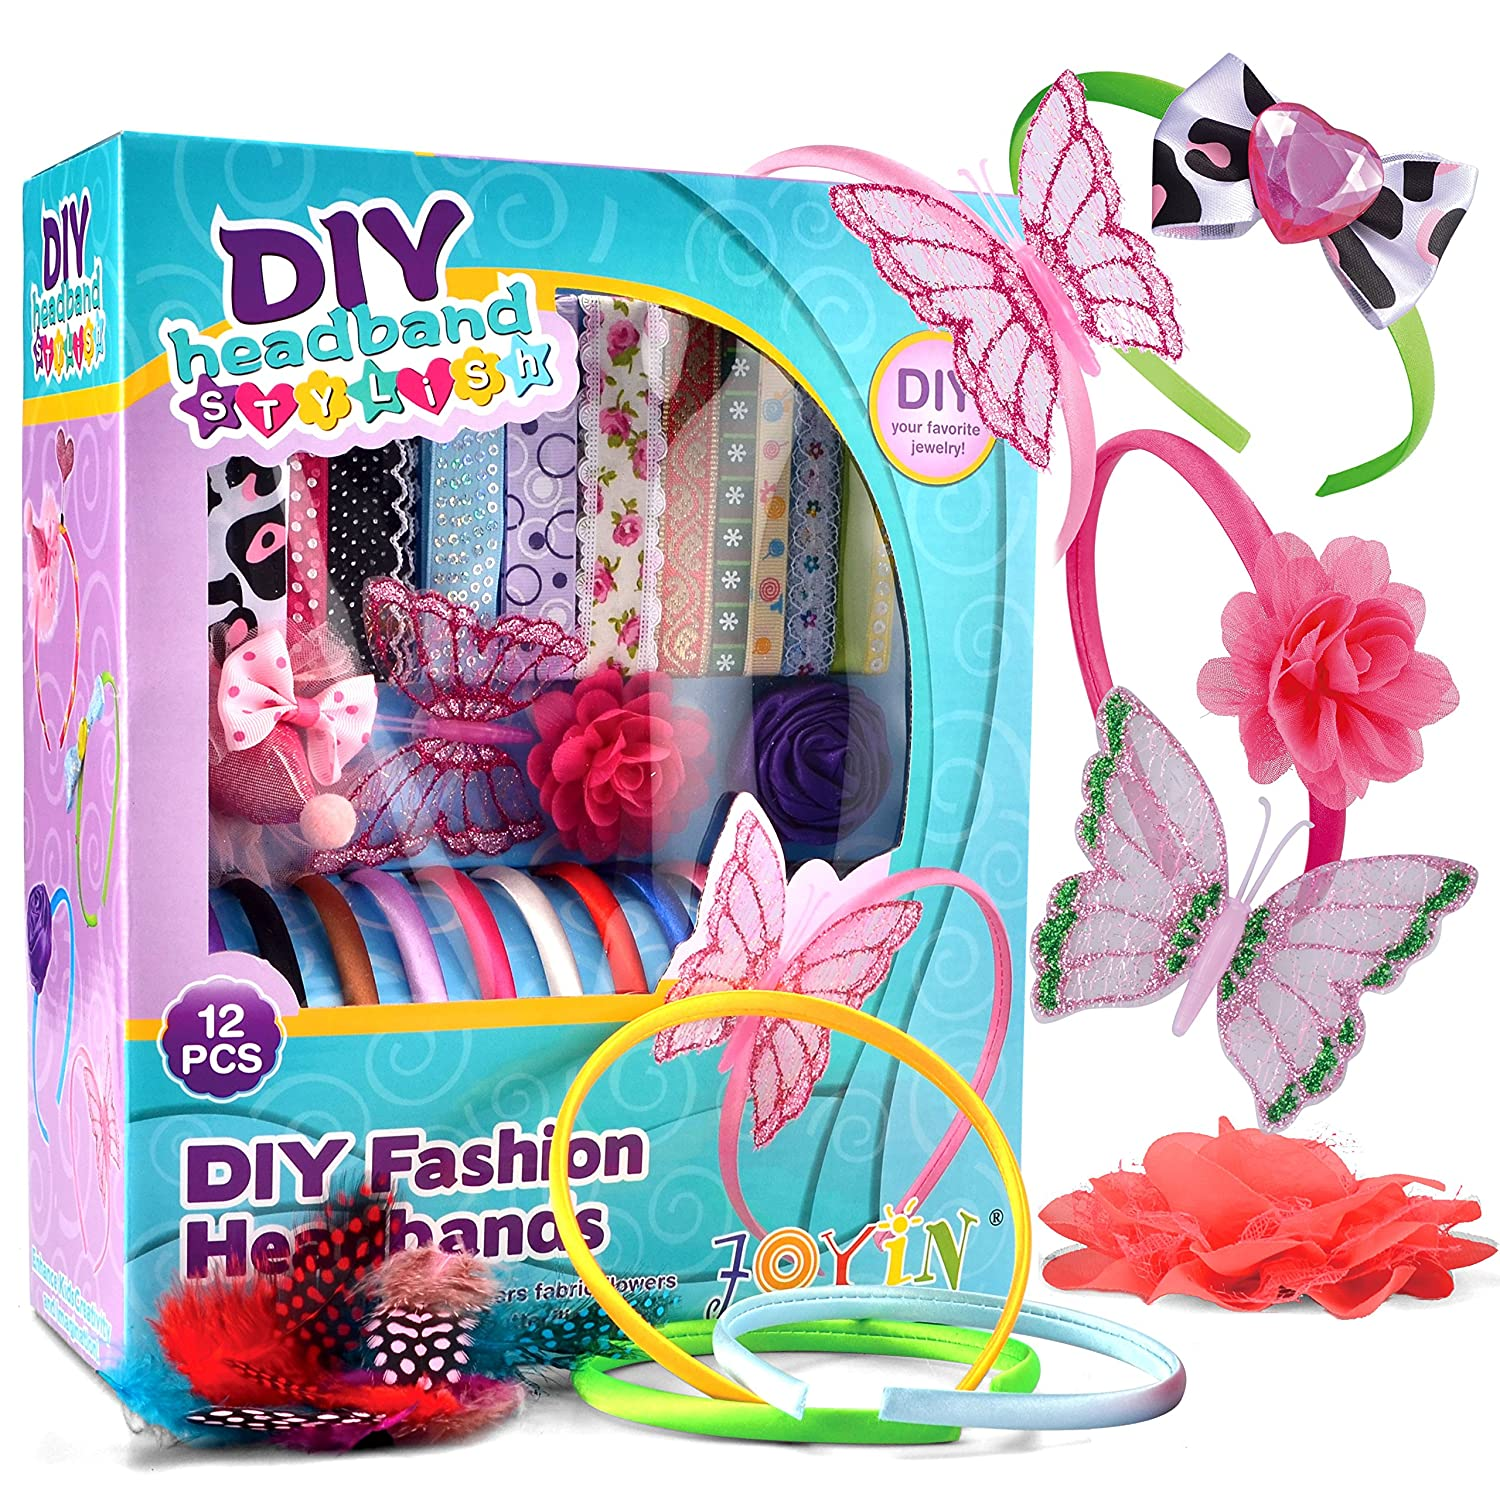 Joyin Toy DIY Girl 12 Satin Fashion Headbands Kids Art and Crafts Kits Girls Jewelry Making Kit Decorated with Hair Accessories